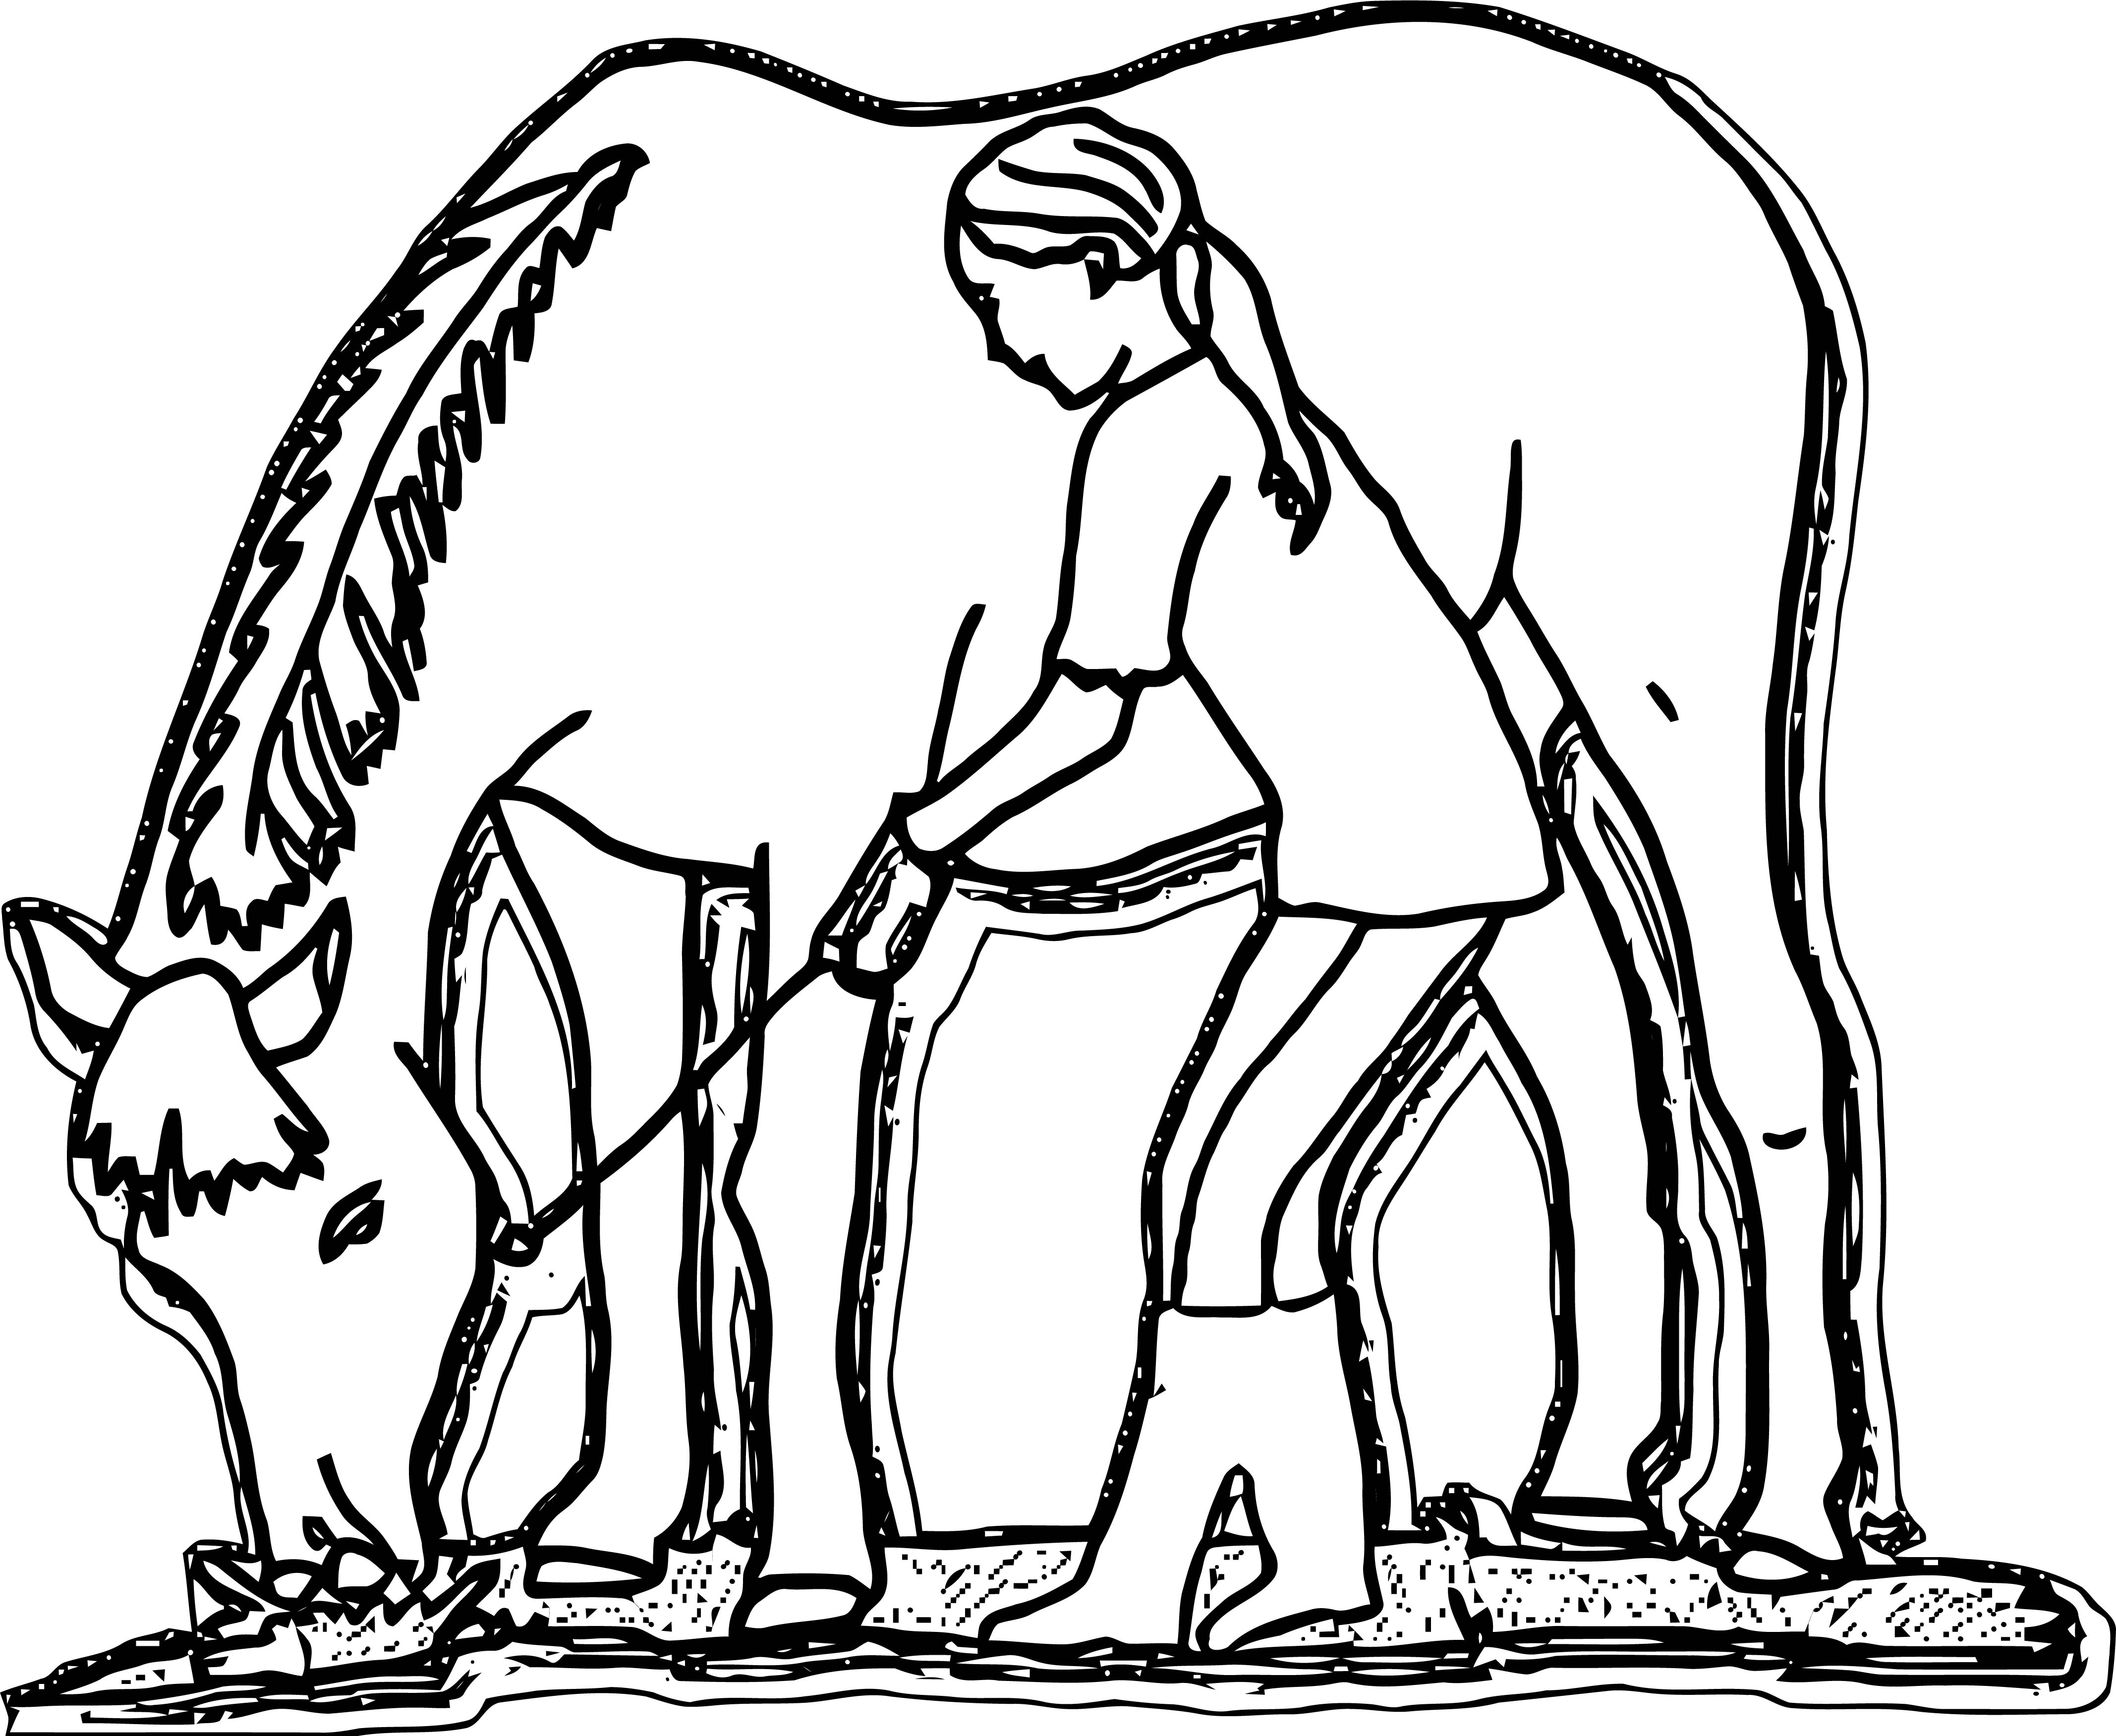 Horse Coloring Page Wecoloringpage 048 | Wecoloringpage.com